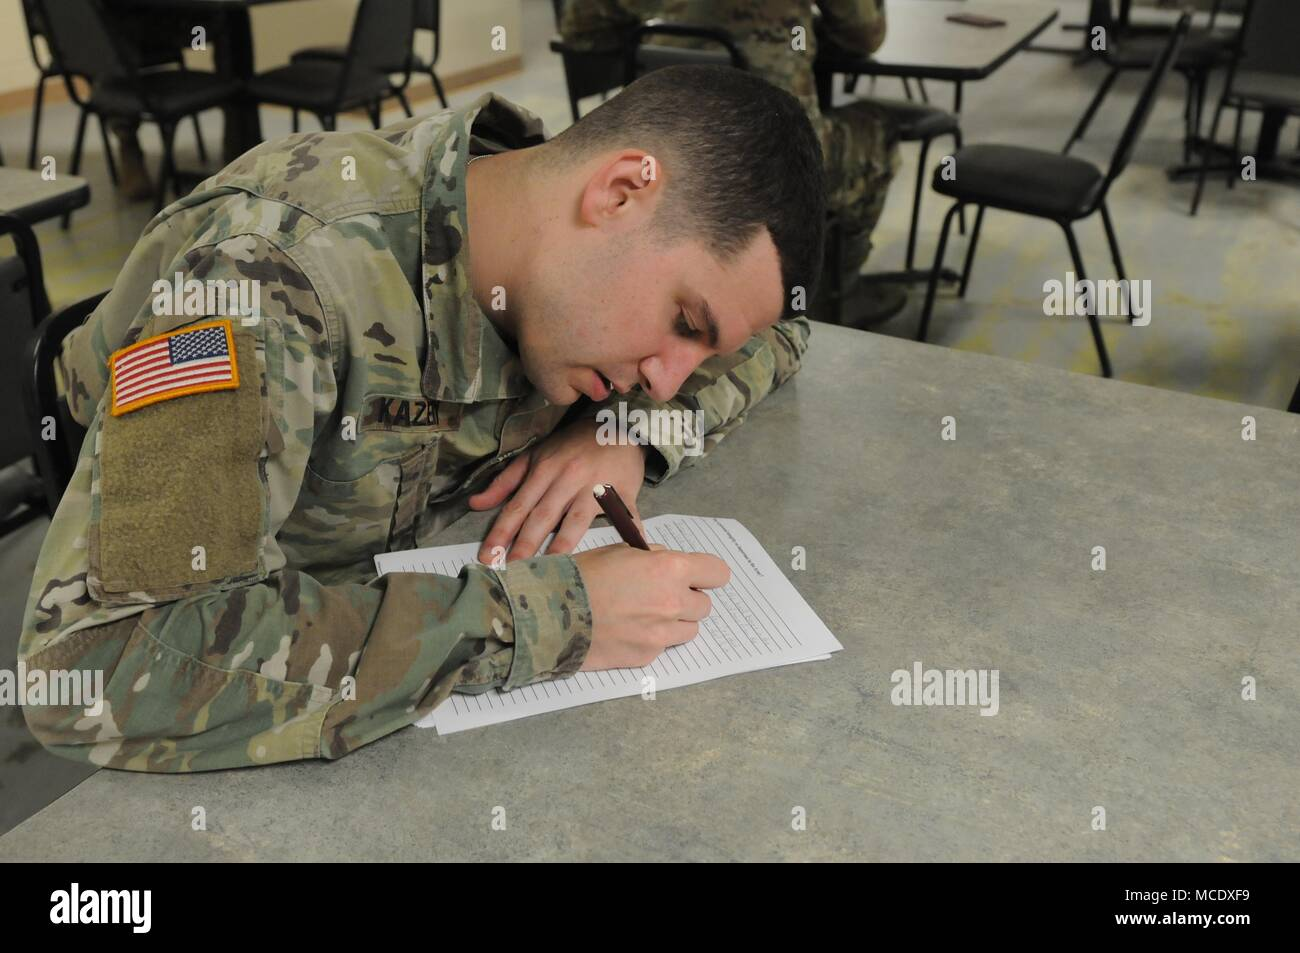 Mississippi Army National Guard Spc. Don N. Kazery, Joint Force Headquarters, takes an exam during the opening event of the Mississippi Best Warrior Competition Feb. 26, 2018. The Best Warrior Competition highlights the various skills and expertise our Soldiers and Airmen contribute to the National Guard team and our all-volunteer force. (U.S. National Guard photo by Chelsy Ables) - Stock Image